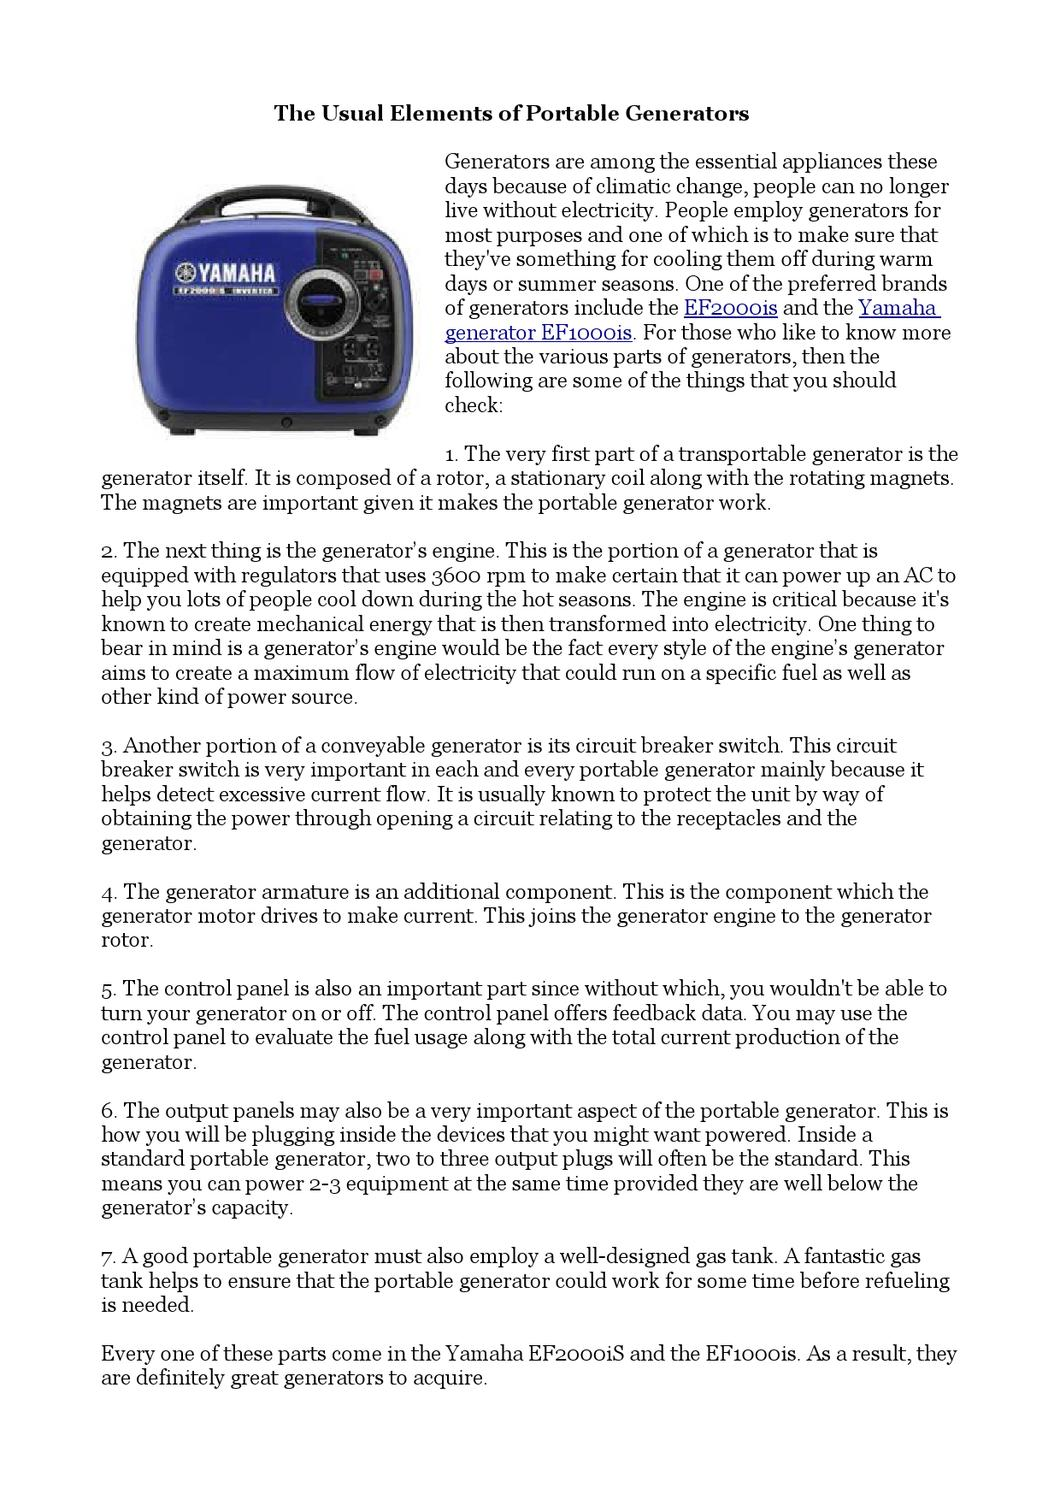 The Usual Elements of Portable Generators by Mariah Evans